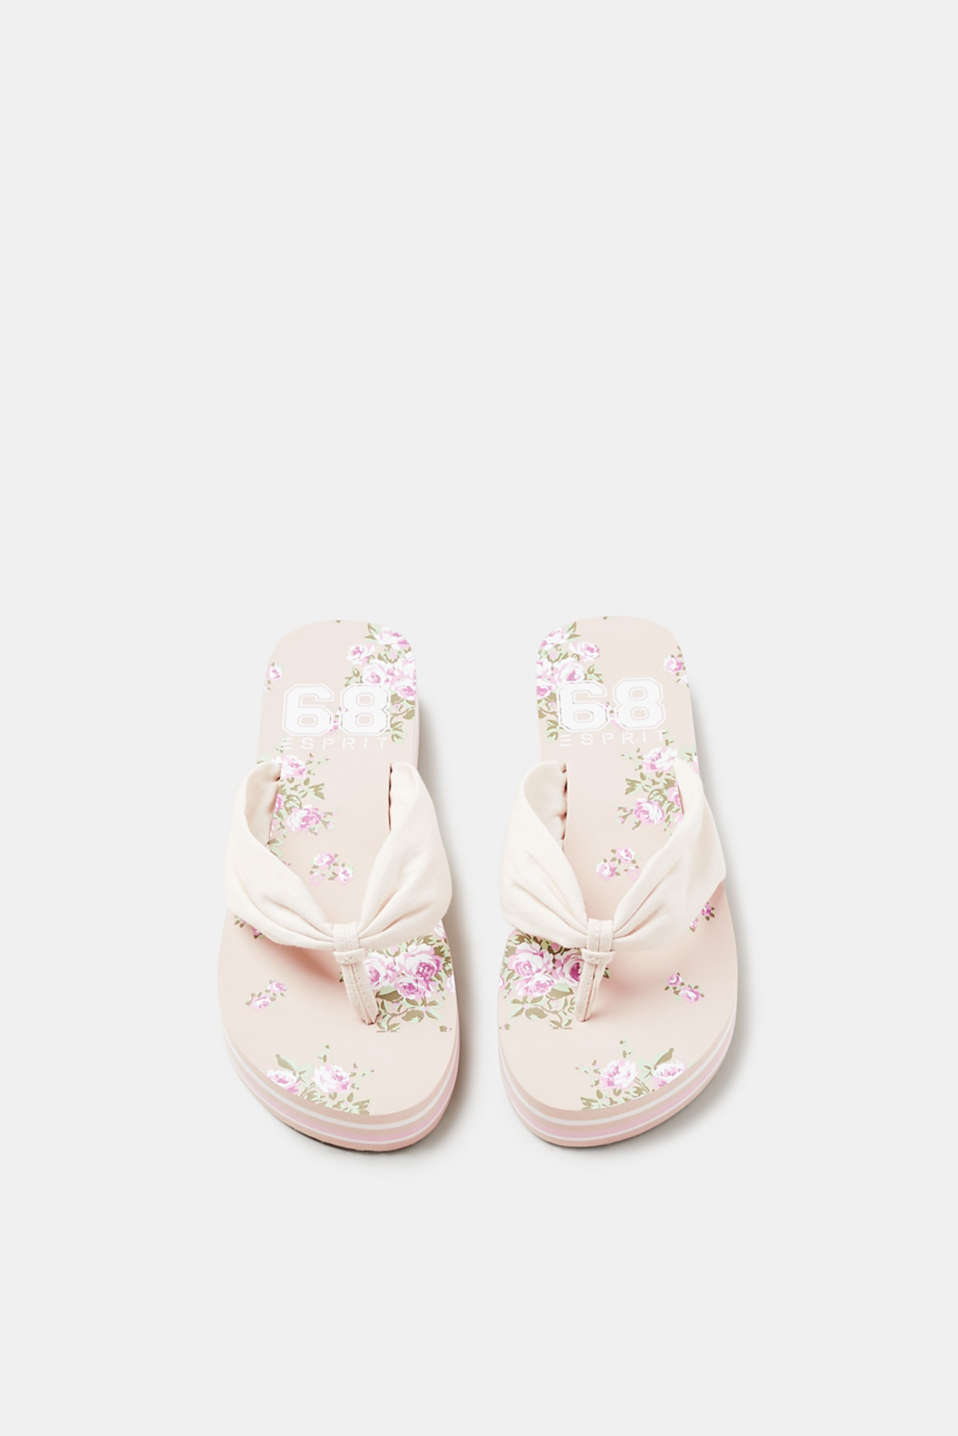 Toe-post sandals with a floral printed platform sole